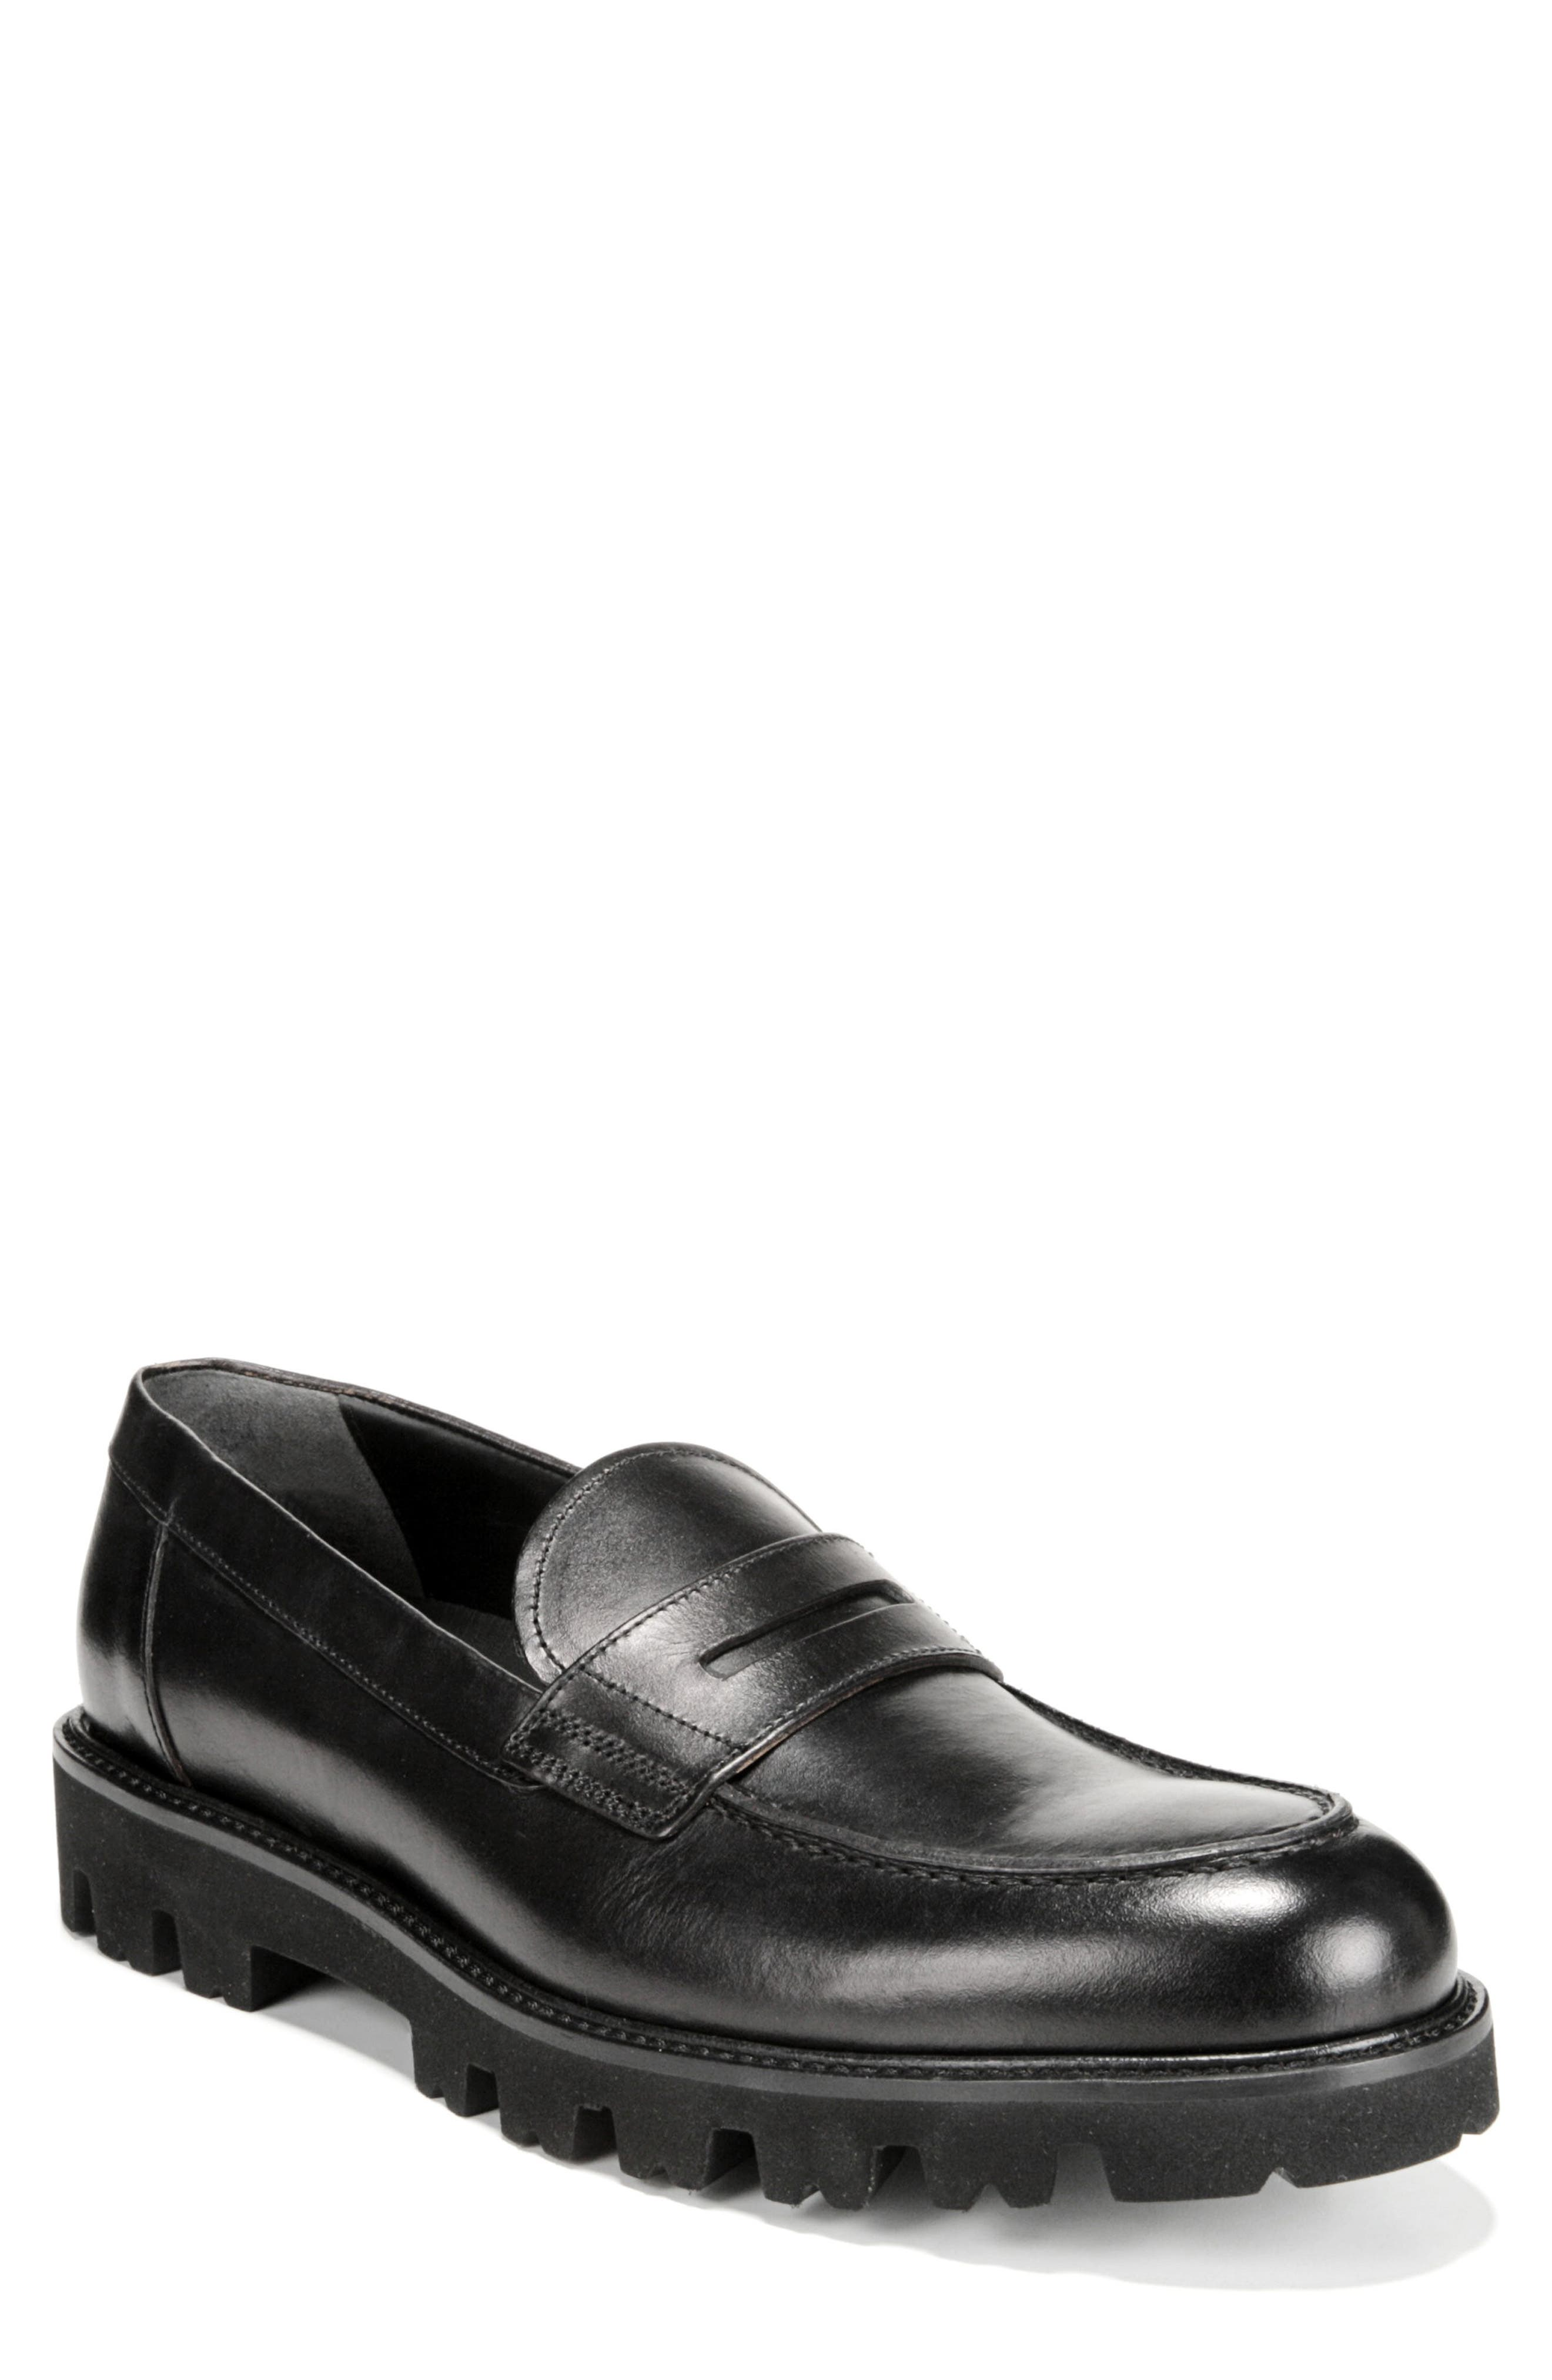 Comrade Loafer,                         Main,                         color, BLACK